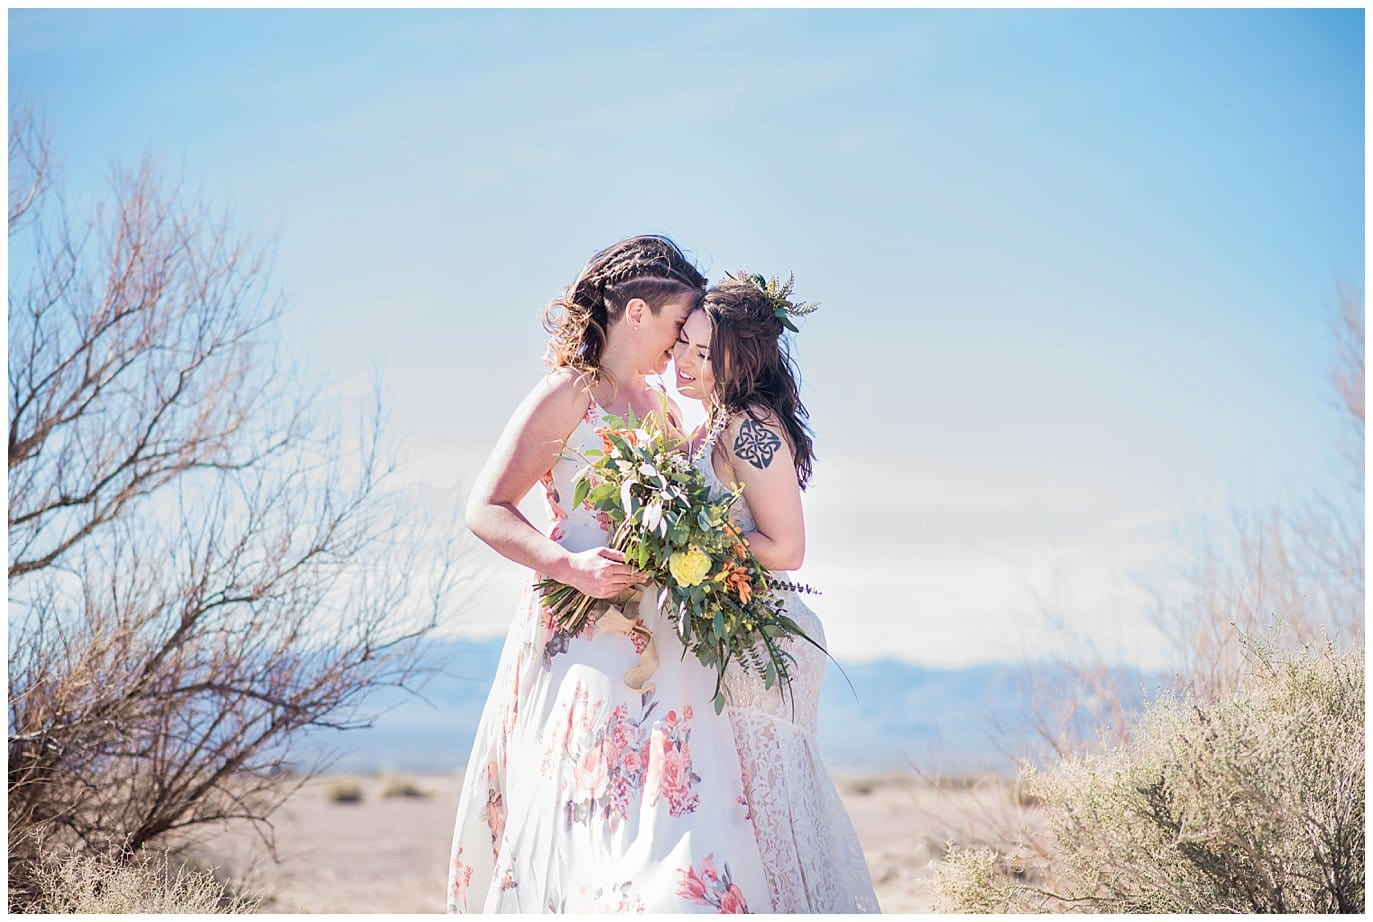 Intimate dry lake bed elopement photo